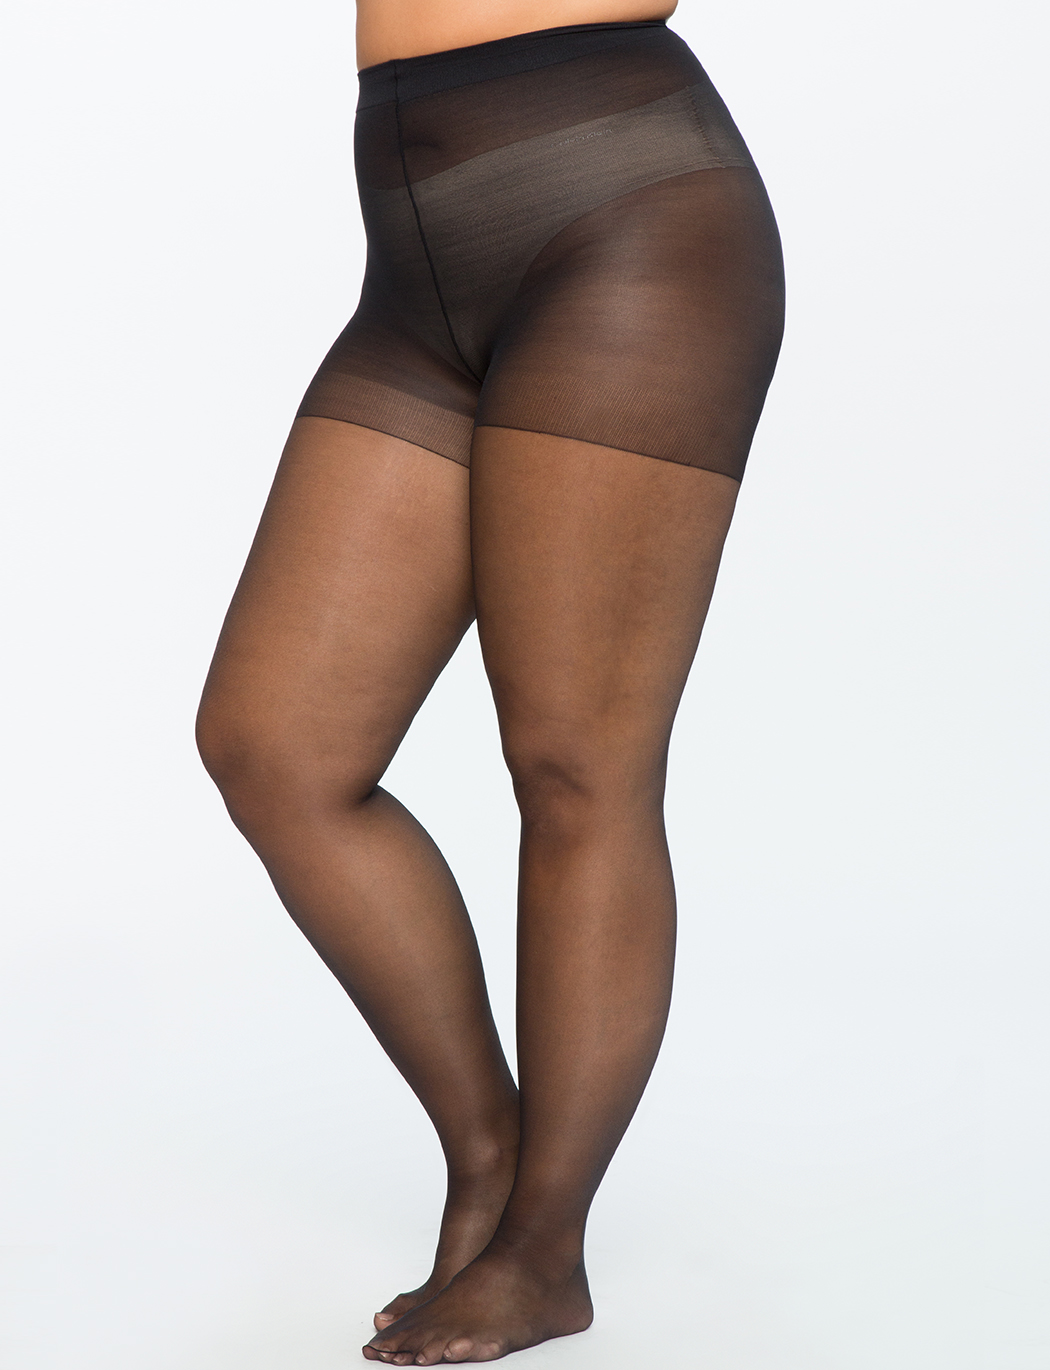 122c391de Sheer Tights. Sheer Tights. The accessory that is your outfit clincher  A  pair of super well made ...